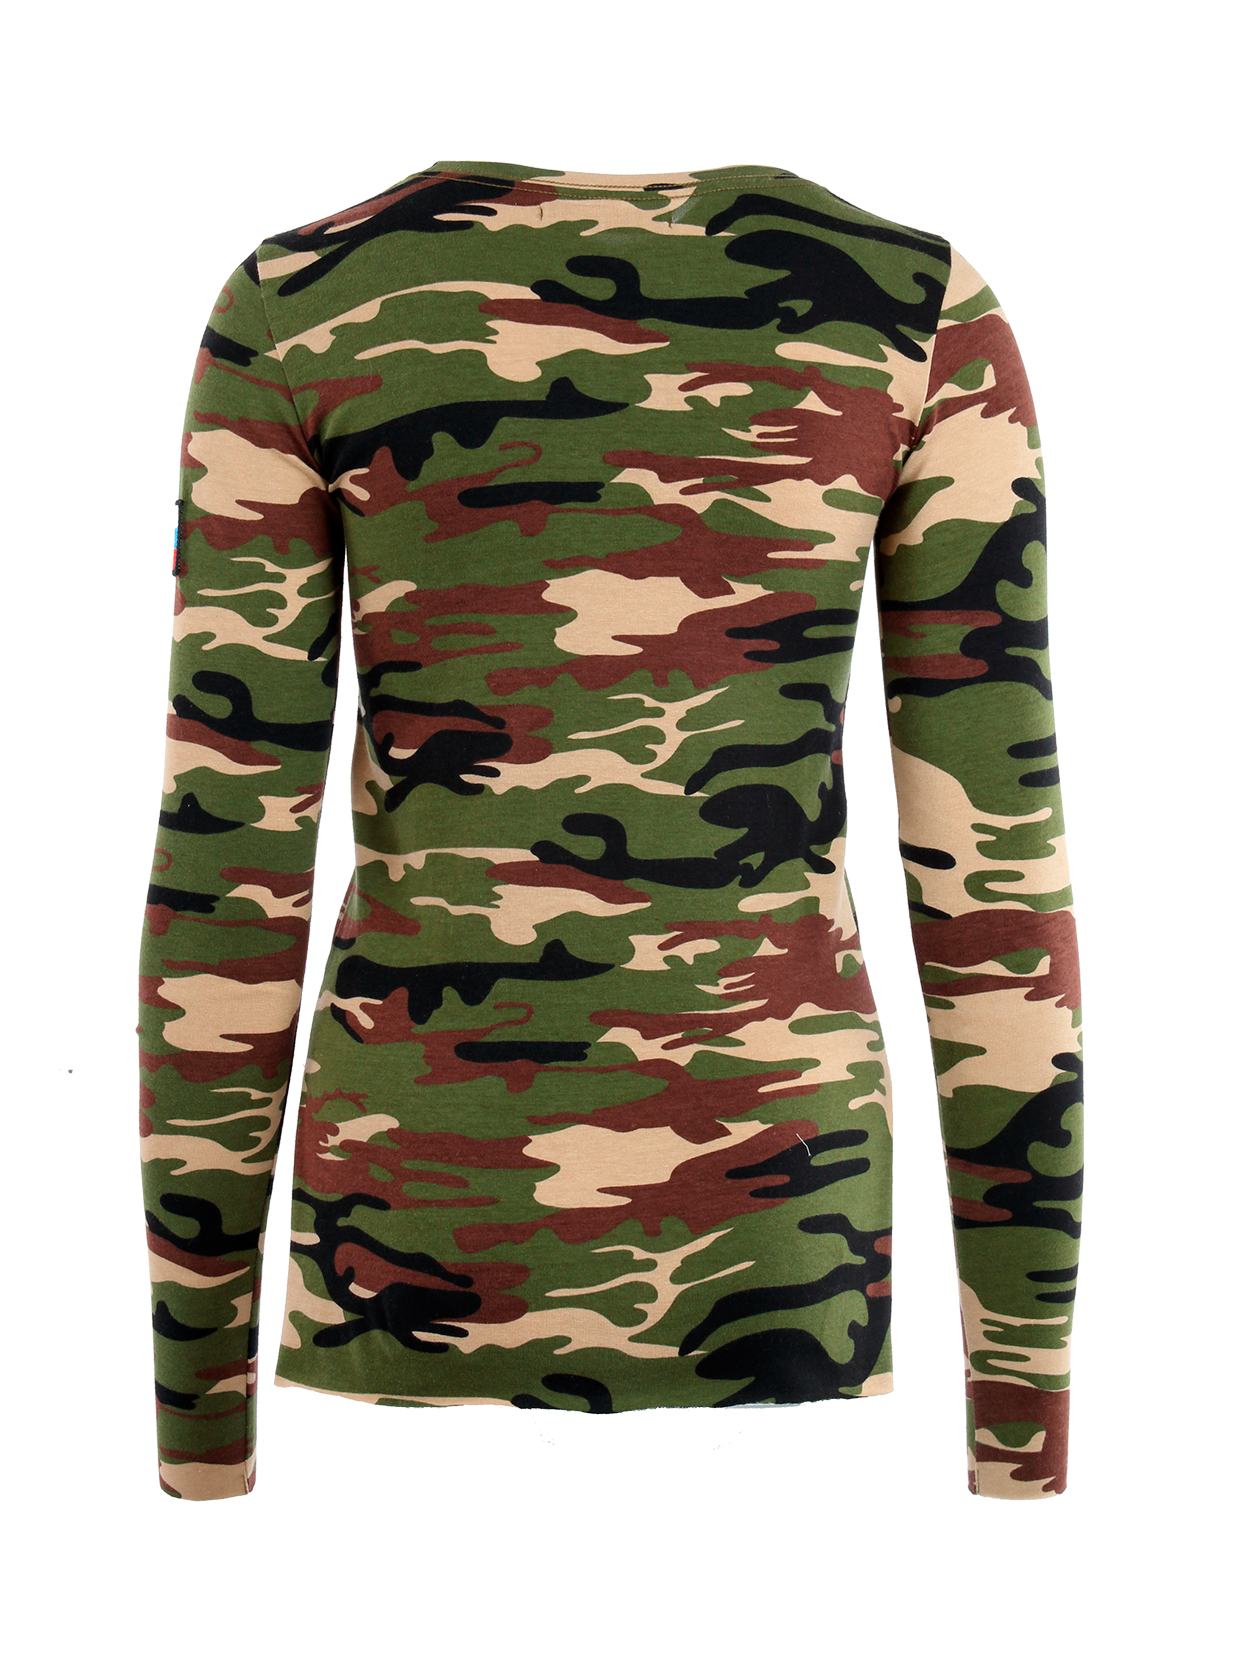 Womens long sleeve t-shirt Camo Patch от BlackStarWear INT